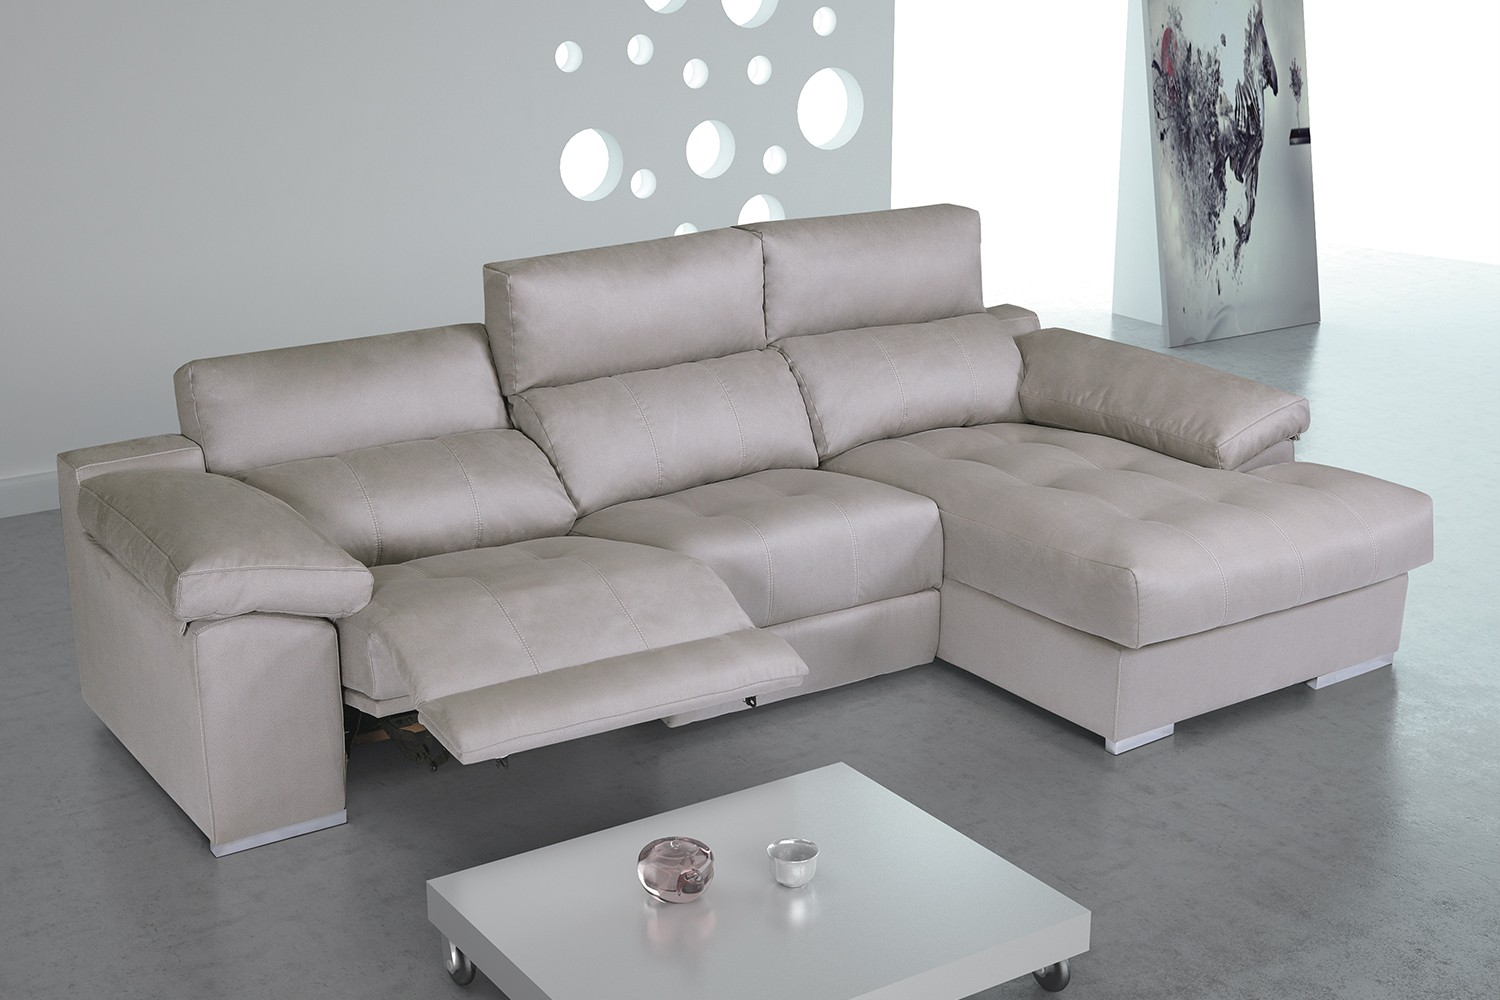 Ofertas Sillones Relax Sofás Chaise Longue 3 Y 2 Relax Oferta Mobles Sedavi